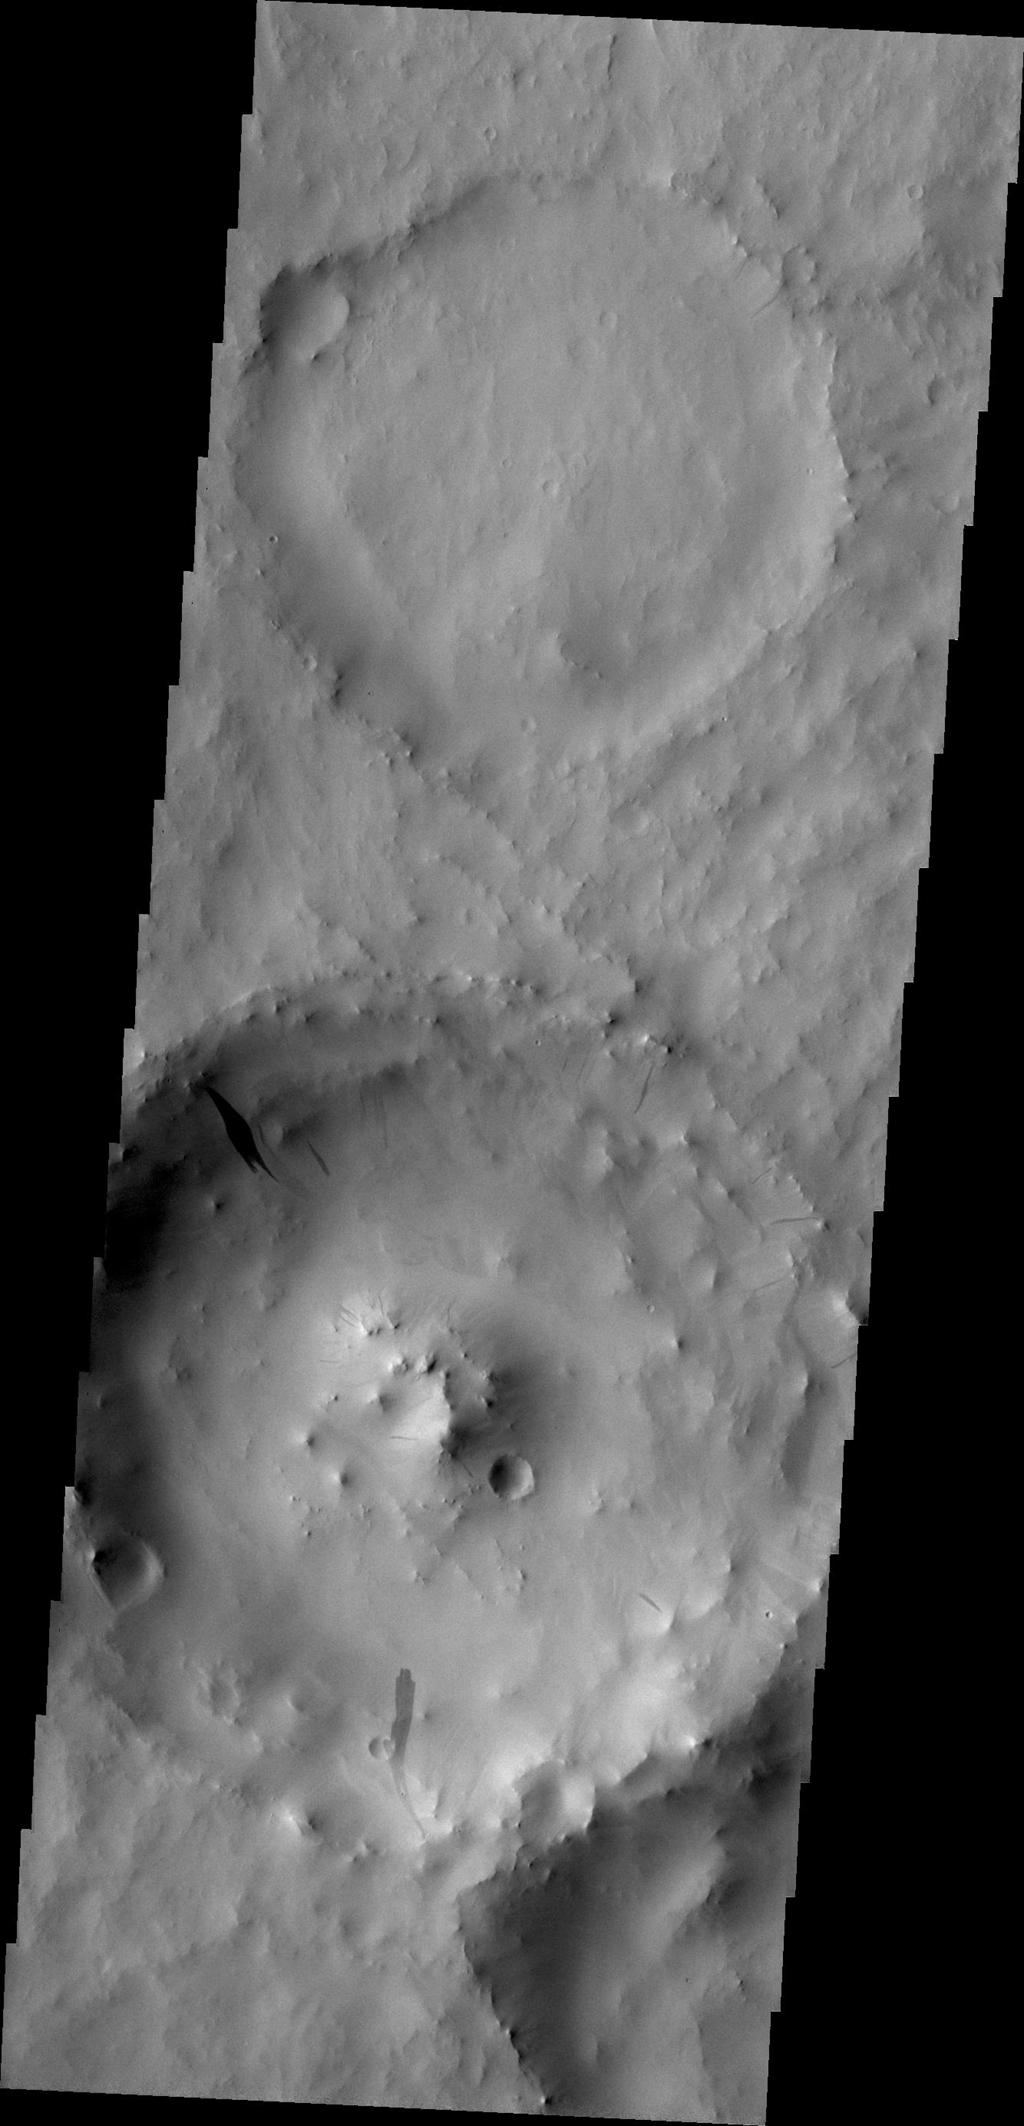 Dark slope streaks, like the ones in this unnamed crater in Terra Sabaea, are believed to be formed when surface dust is displaced and the darker rock below is exposed. Rocks falling due to gravity likely formed these streaks.